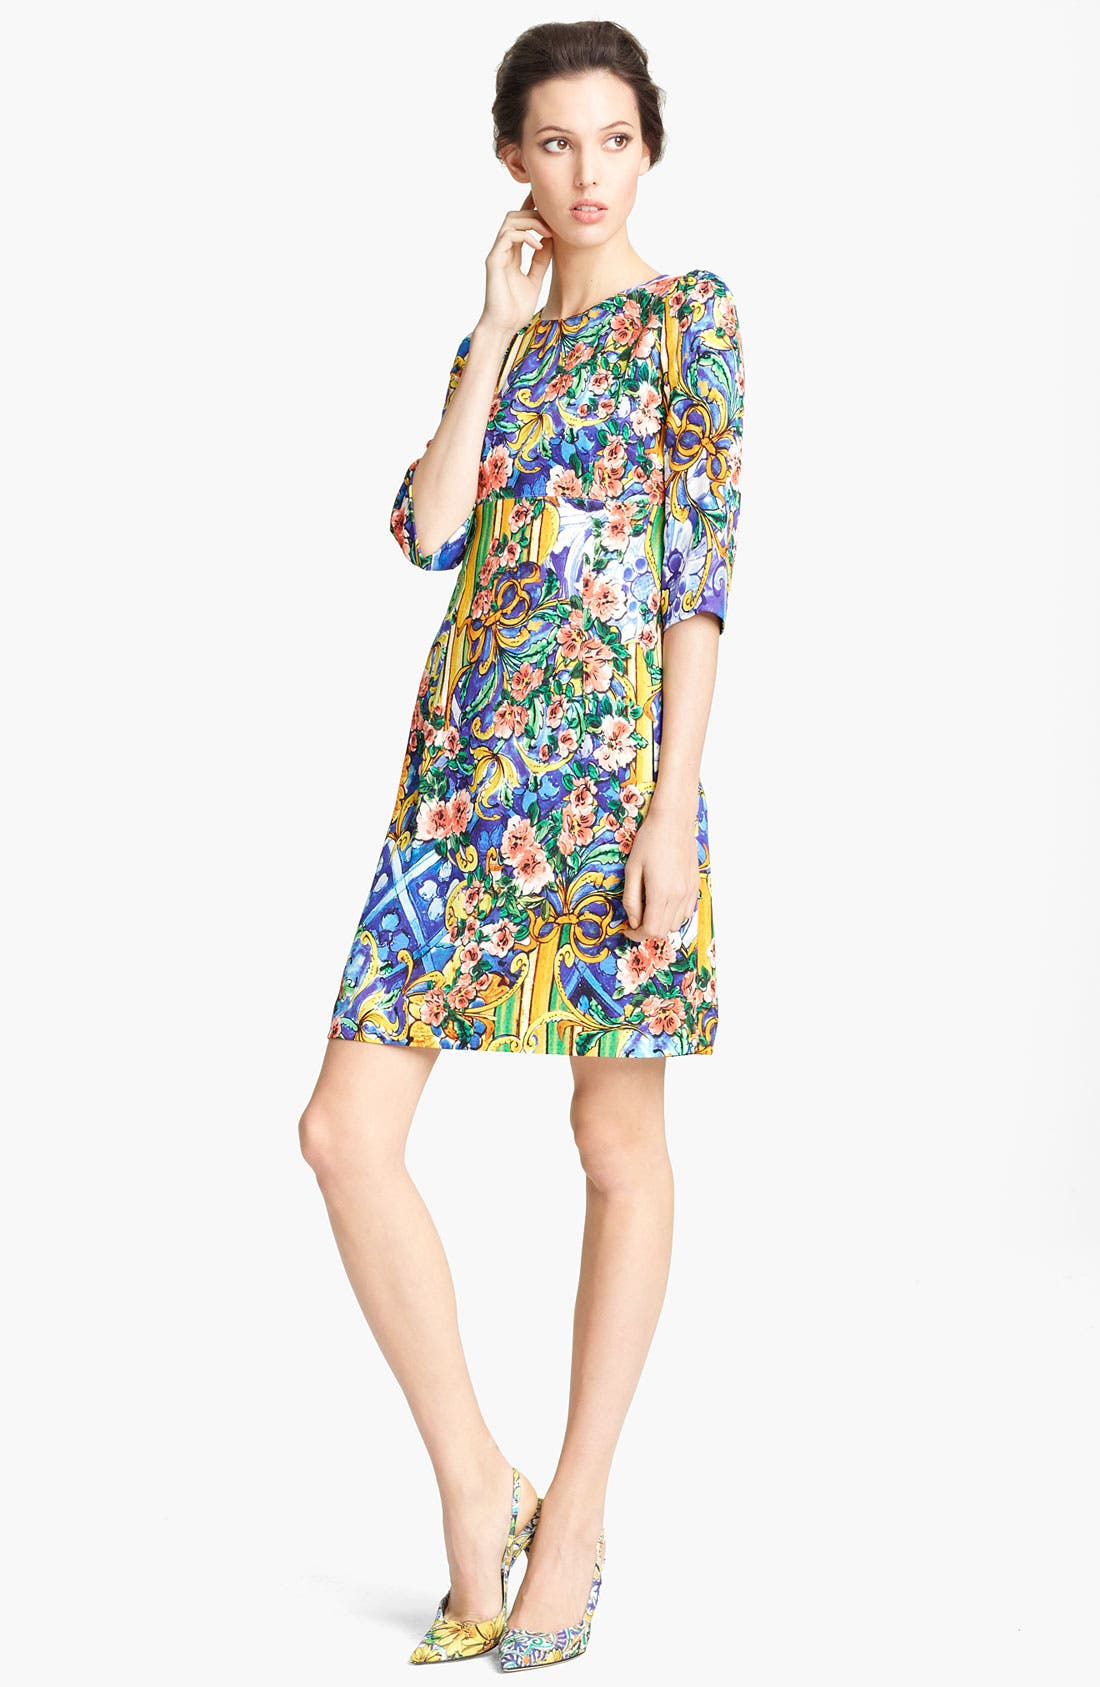 Main Image - Dolce&Gabbana Floral Print Stretch Cady Dress